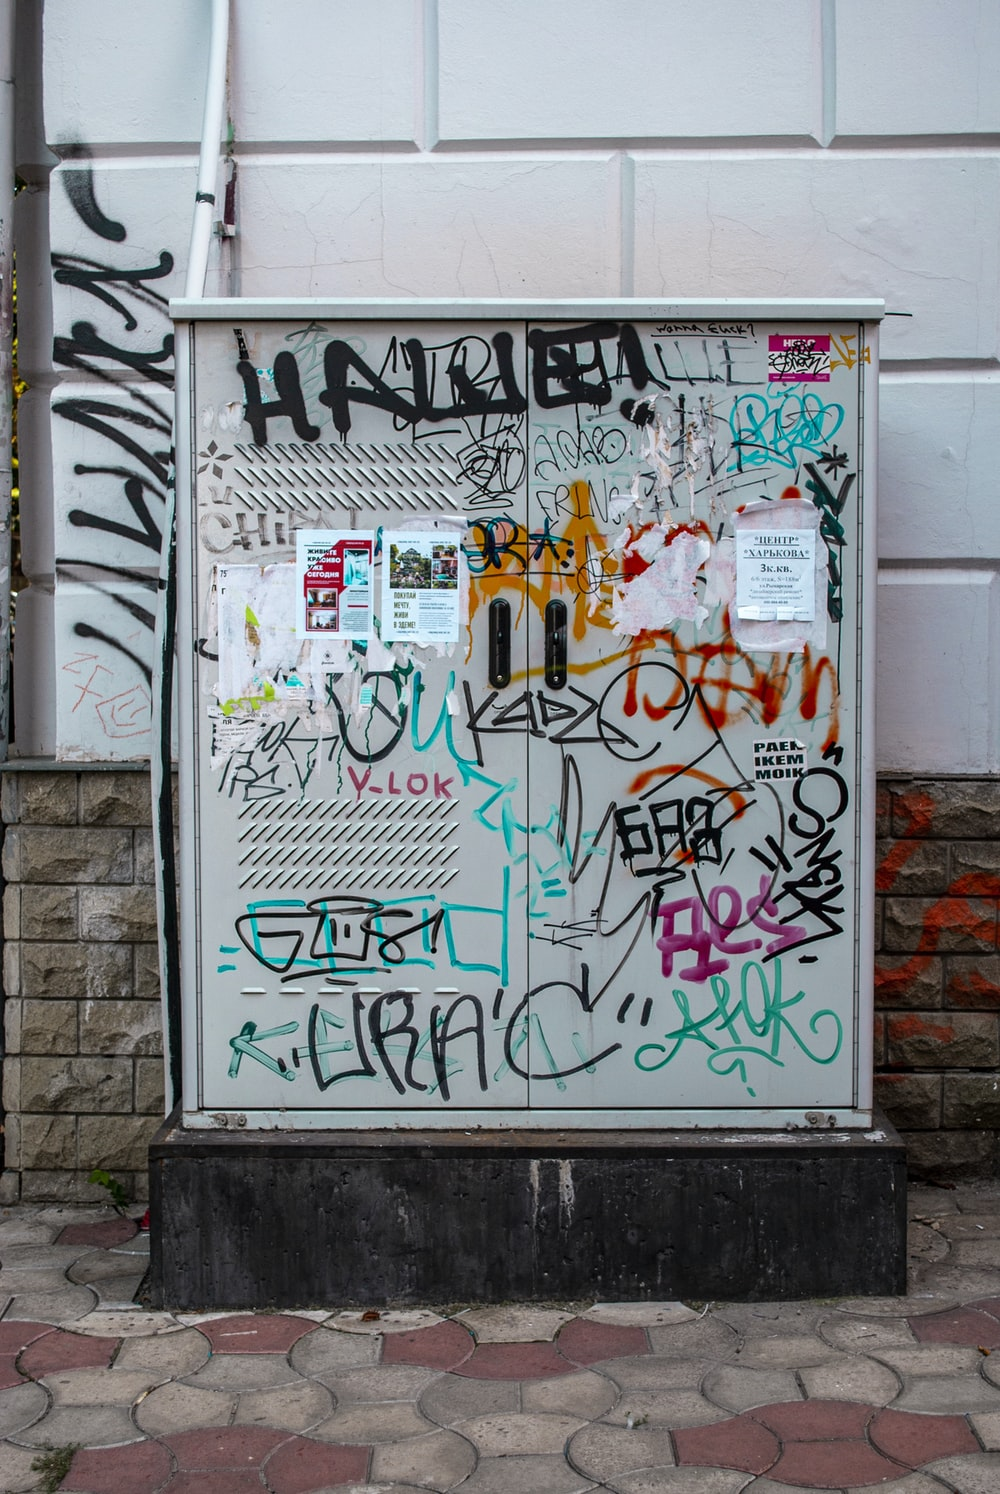 white distribution box with vandals